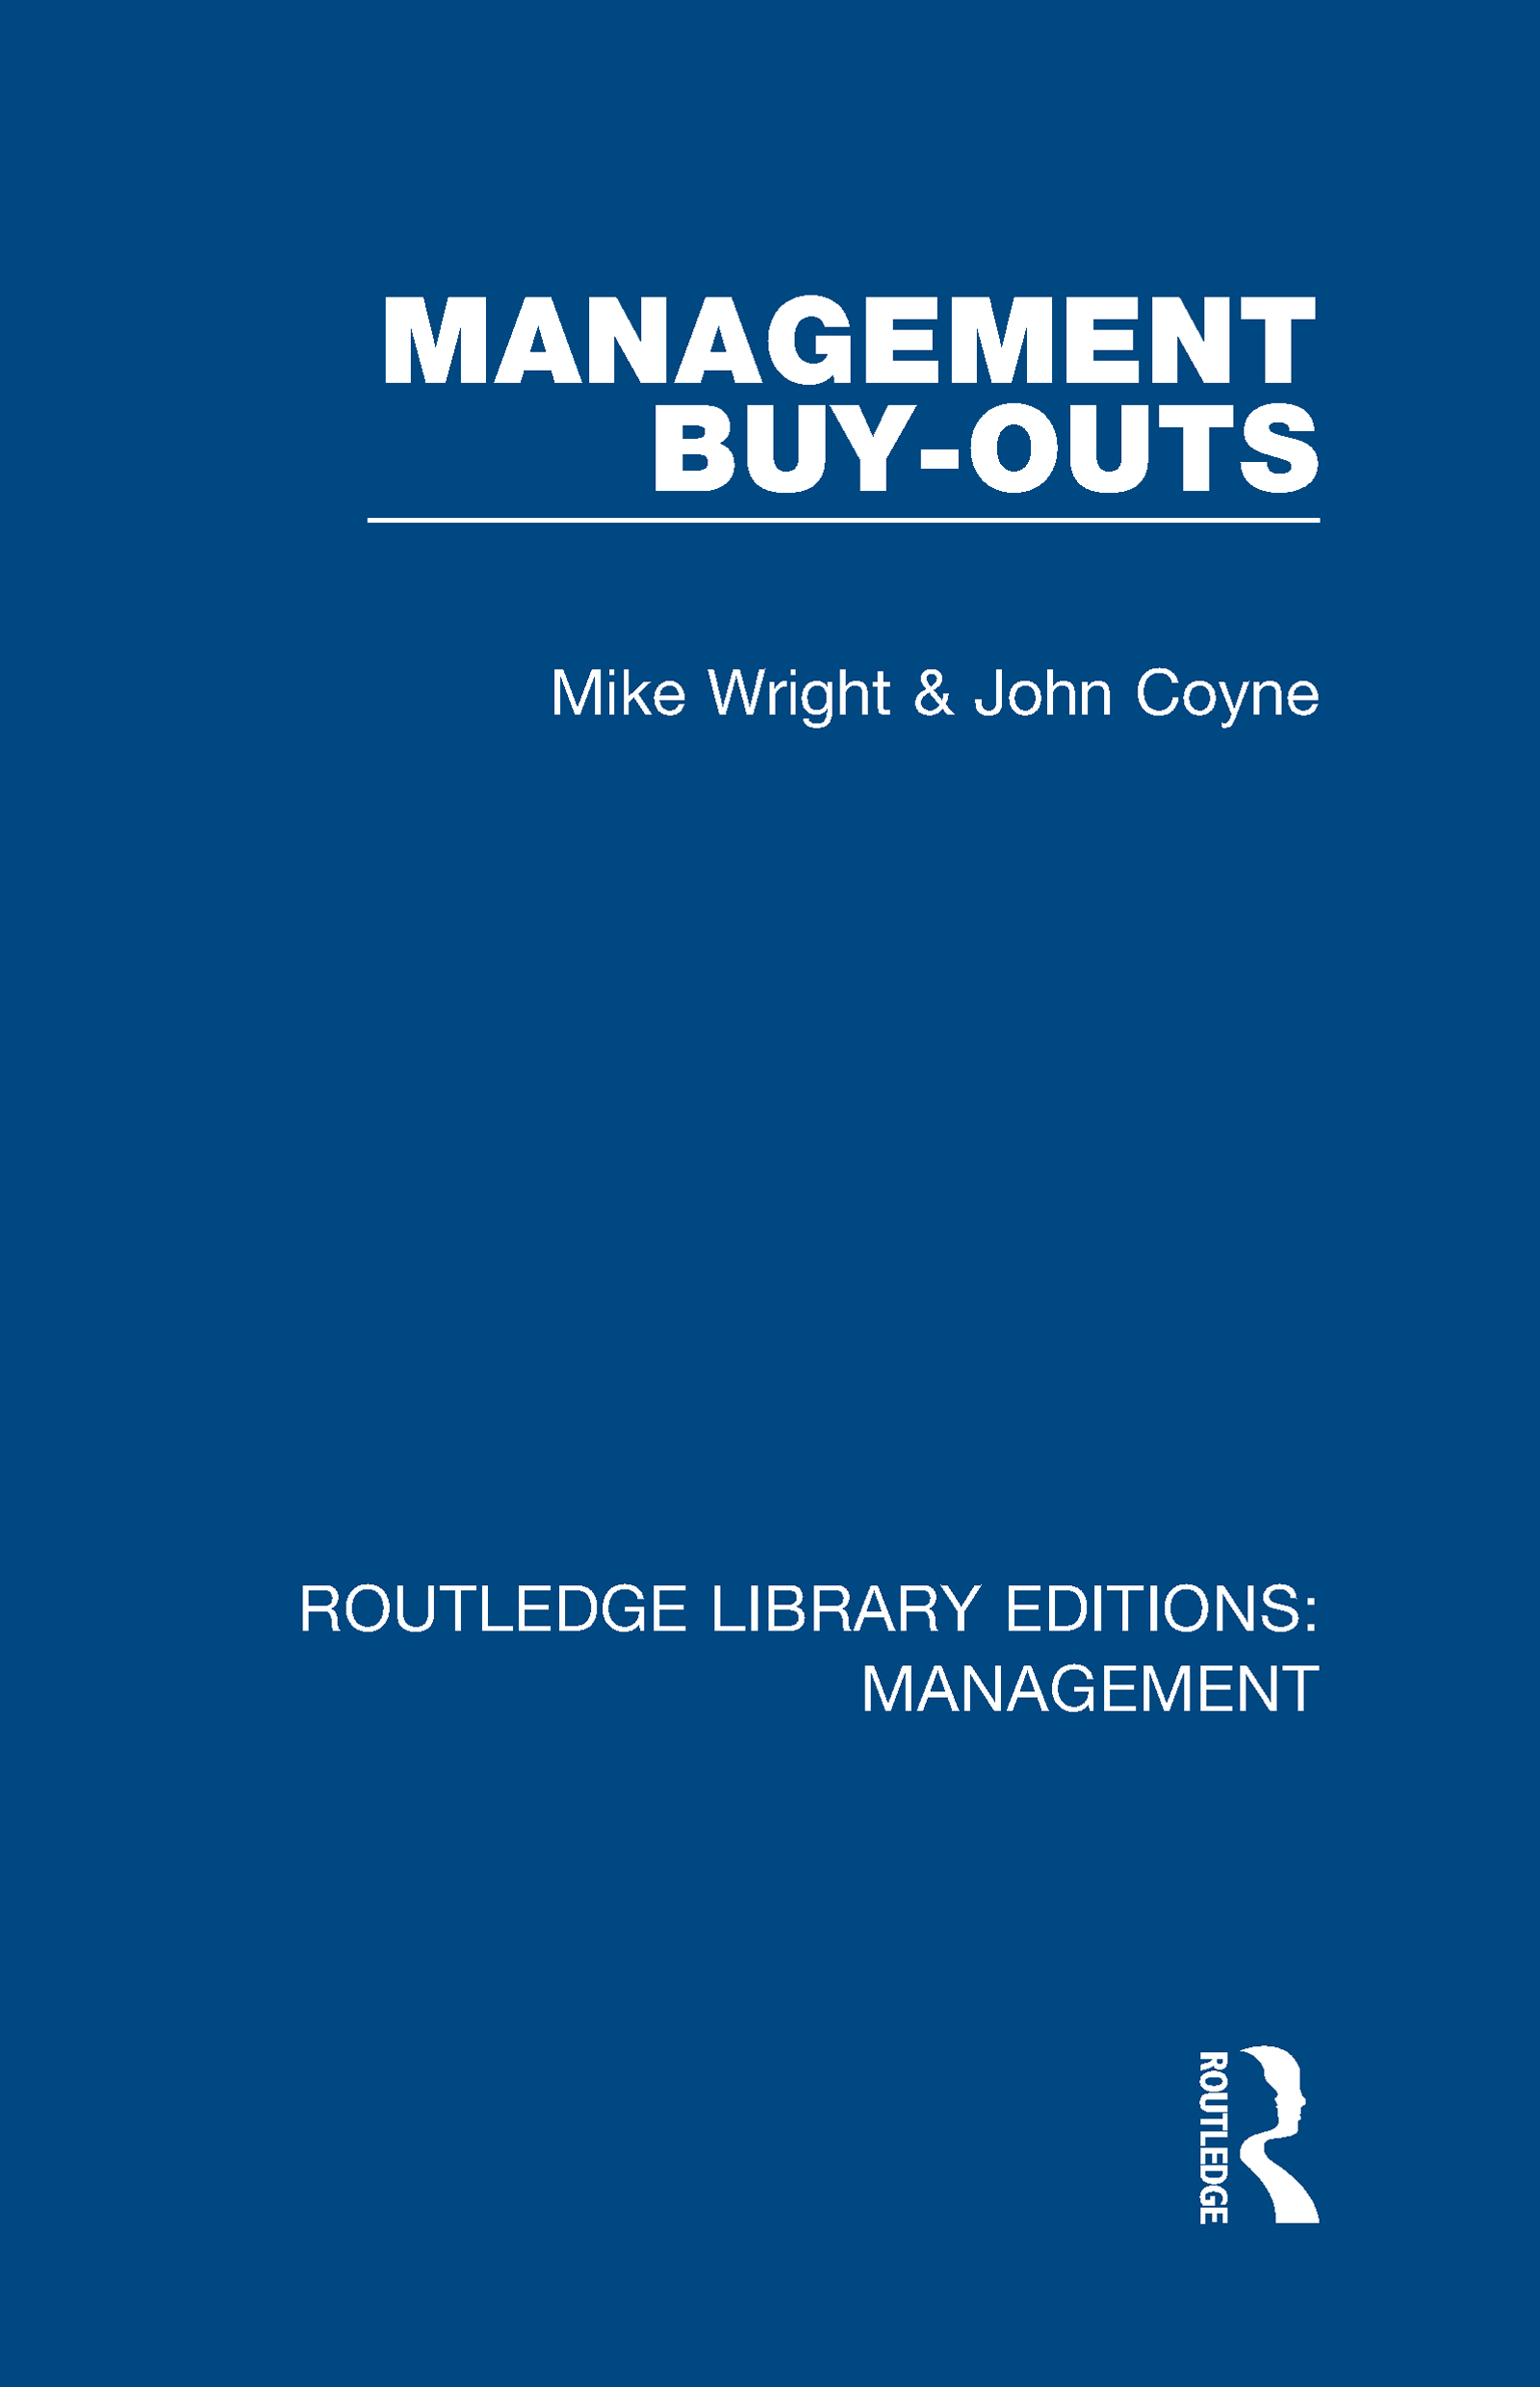 Management Buy-Outs book cover